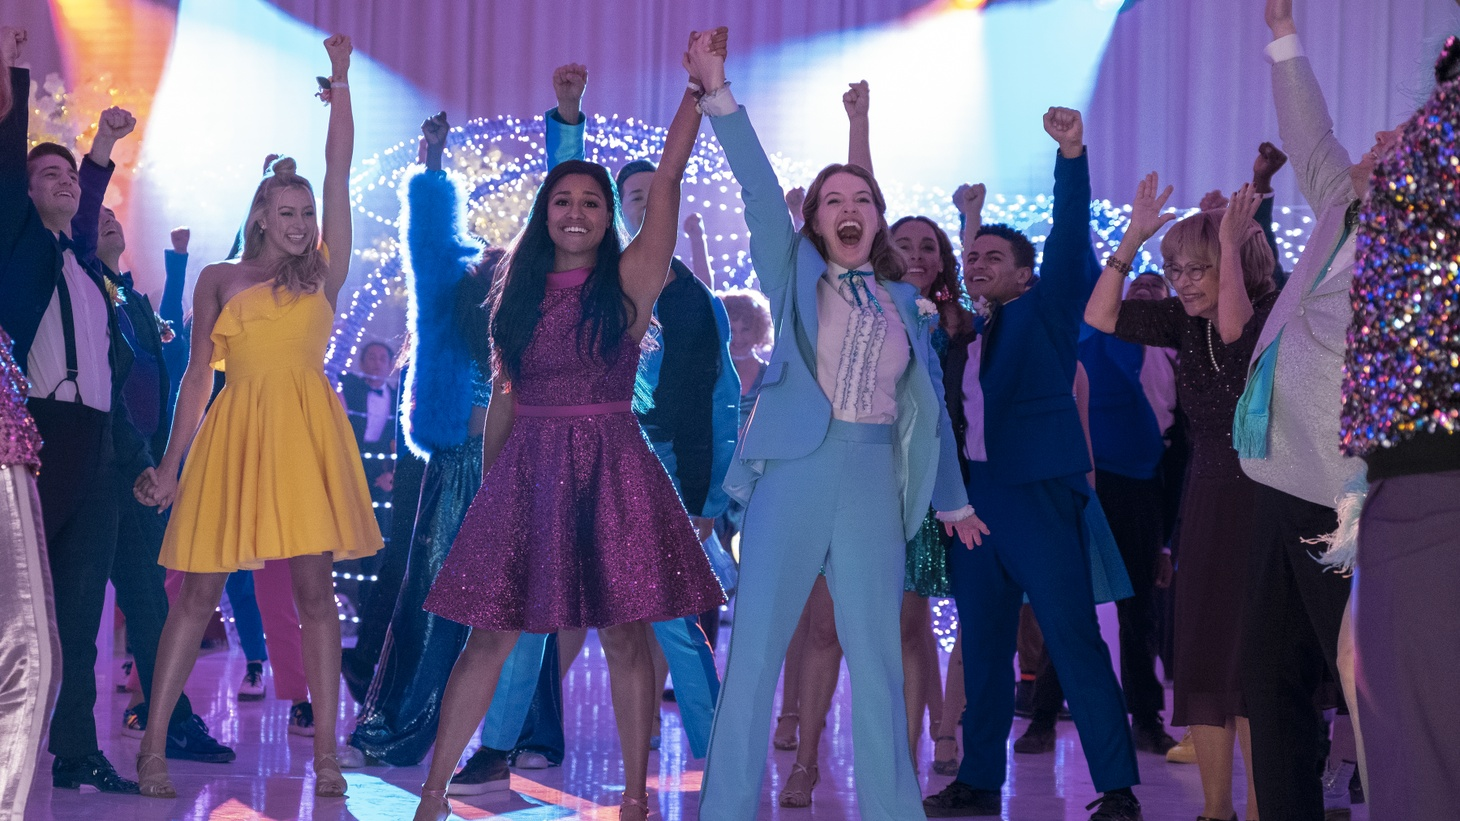 """Nico Greetham as Nick, Logan Riley Hassel as Kaylee, Ariana Debose as Alyssa Greene, Andrew Rannells as Trent Oliver, Jo Ellen Pellman as Emma, Sofia Deler as Shelby, Nathaniel Potvin as Kevin, Tracey Ullman as Vera, James Corden as Barry Glickman in """"The Prom."""""""